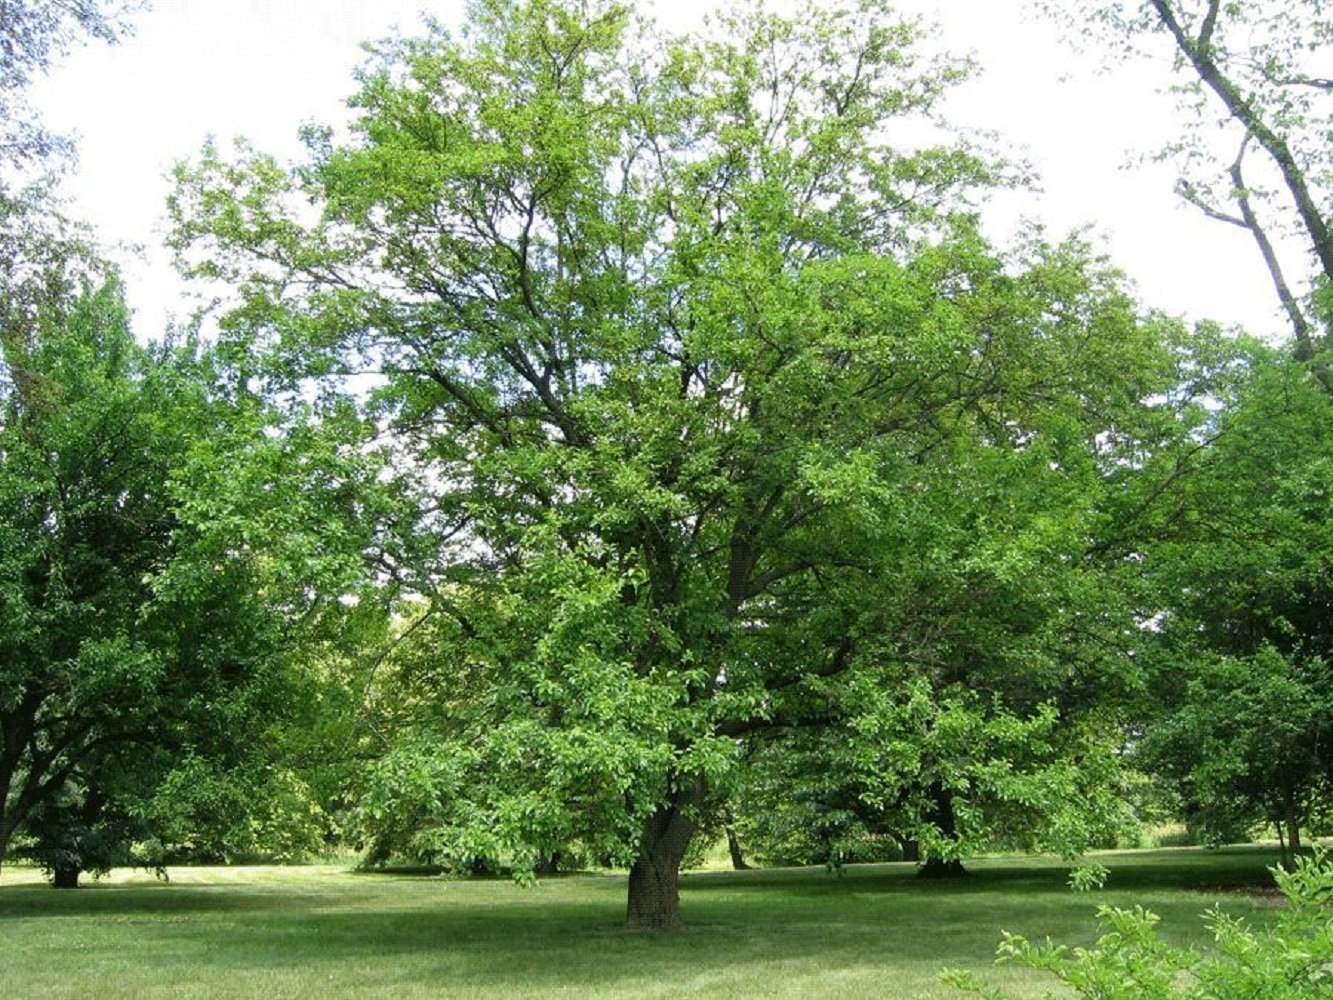 3 Bare Root Plants White Mulberry Tree Edible Berry Fruit Live Healthy 12-18'' Tall V2 by Iniloplant (Image #3)